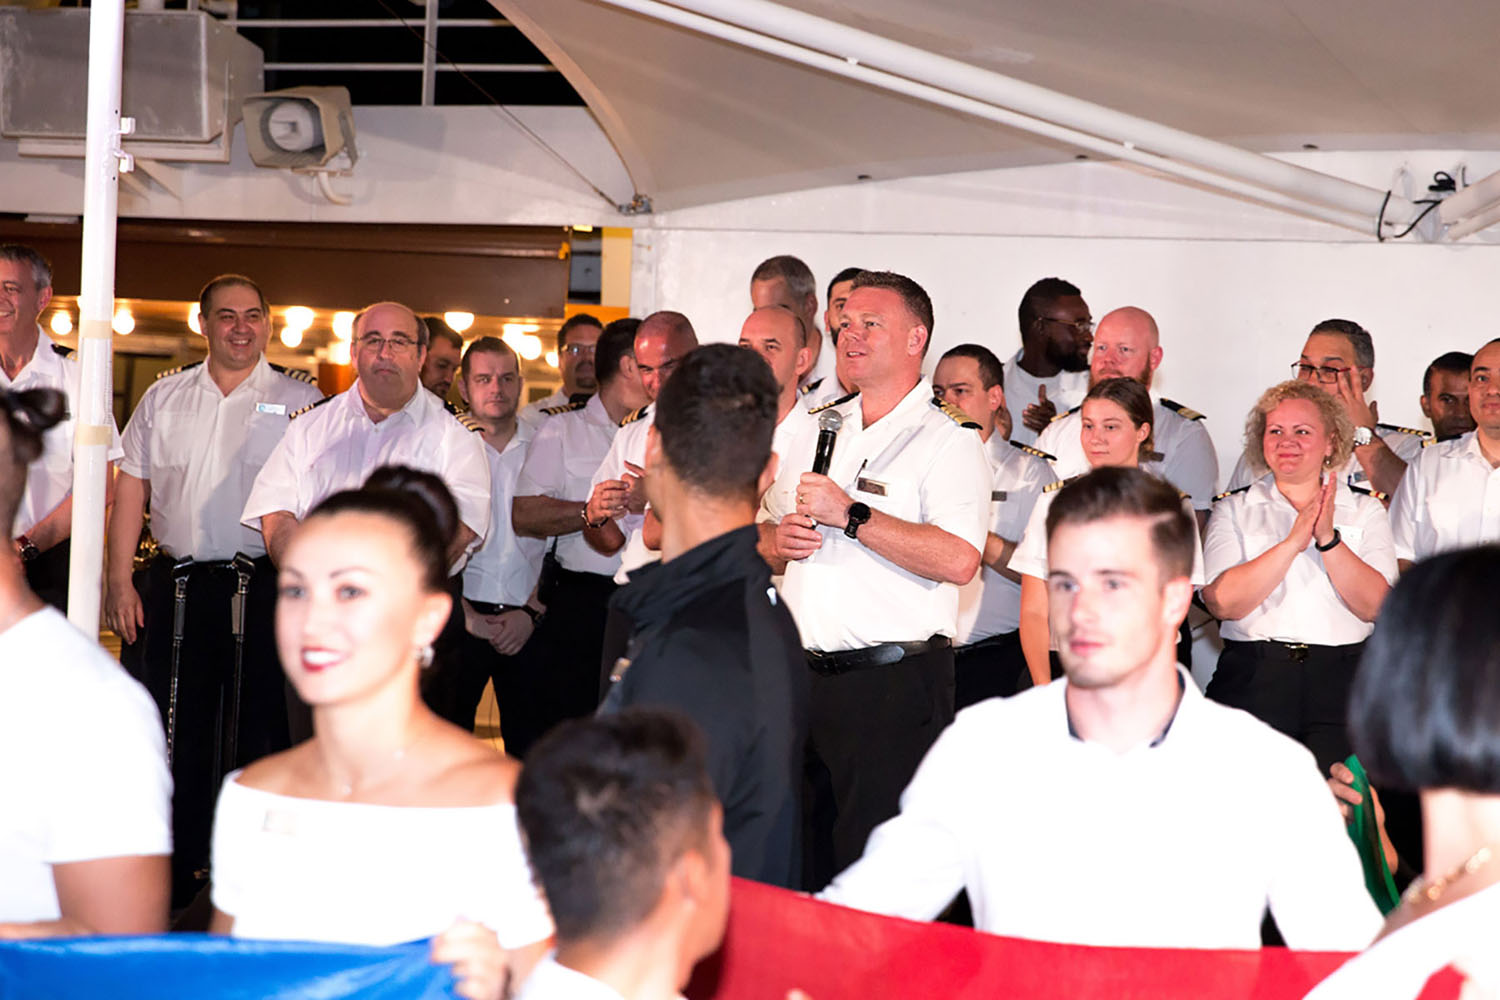 Captain Carl makes his final speech onboard the Azamara Quest cruise ship.